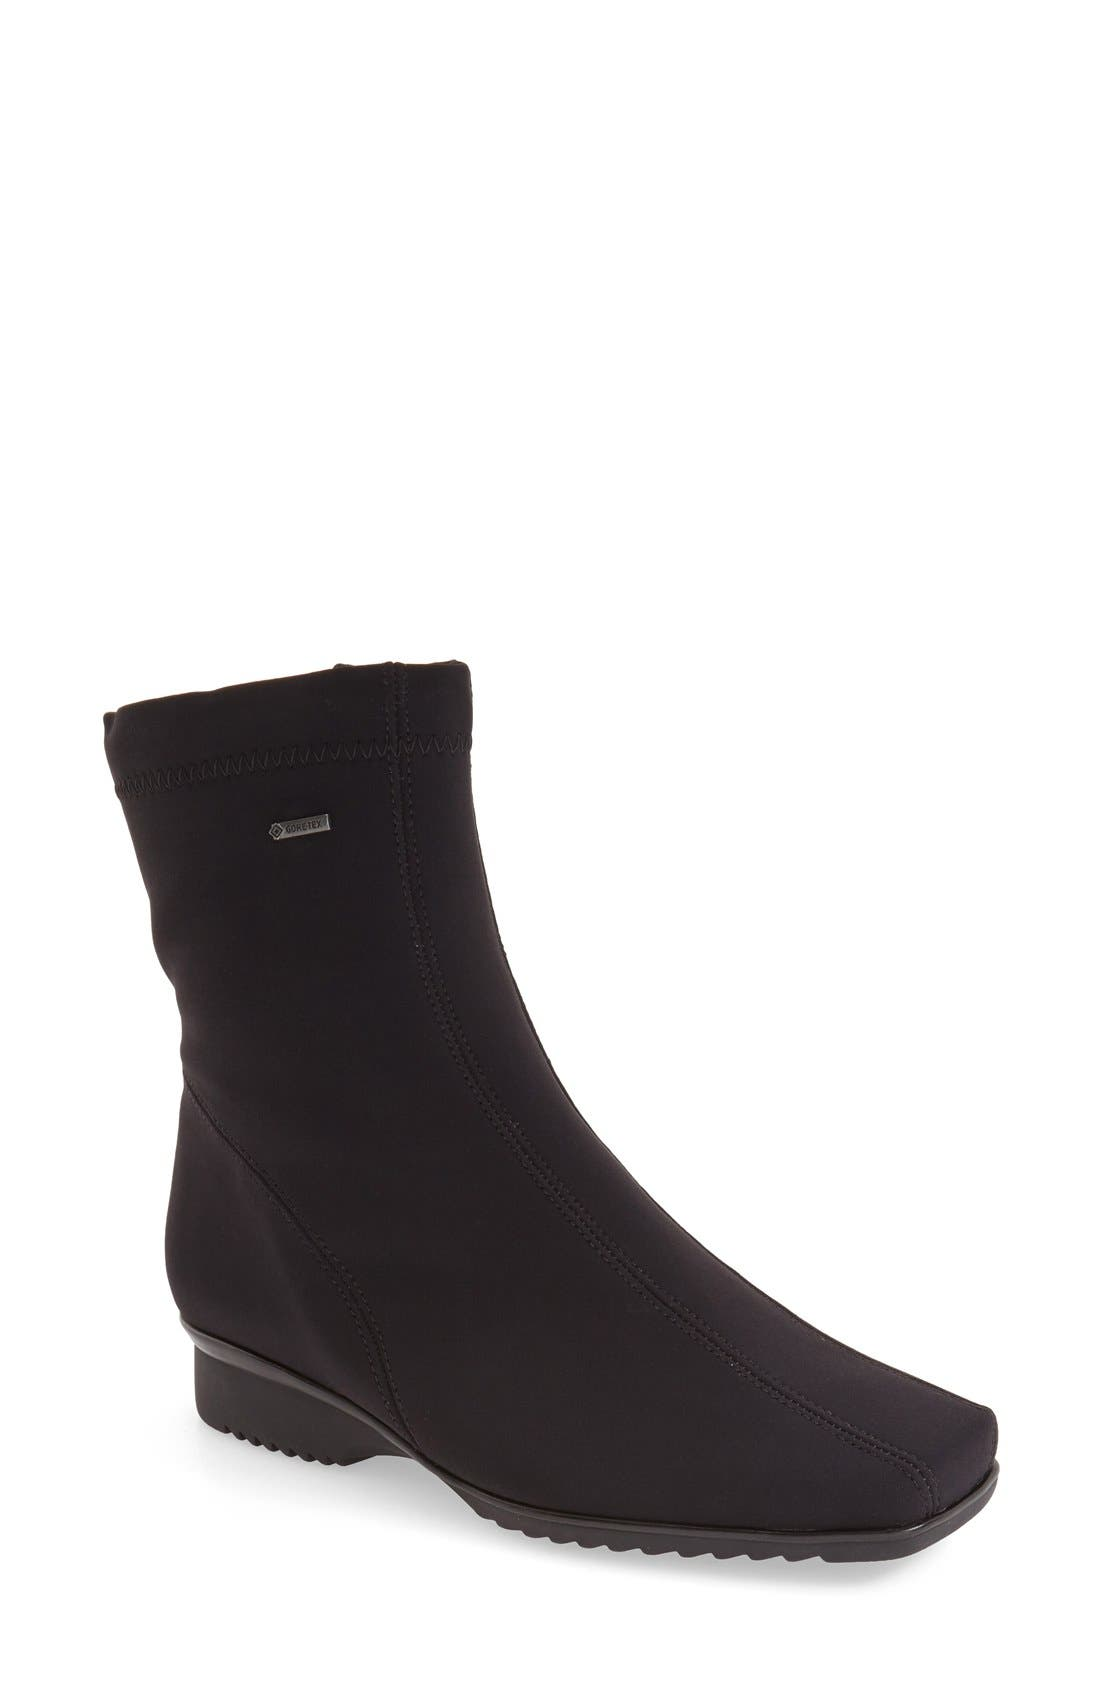 'Page' Waterproof Gore-Tex<sup>®</sup> Ankle Bootie, Main, color, BLACK FABRIC